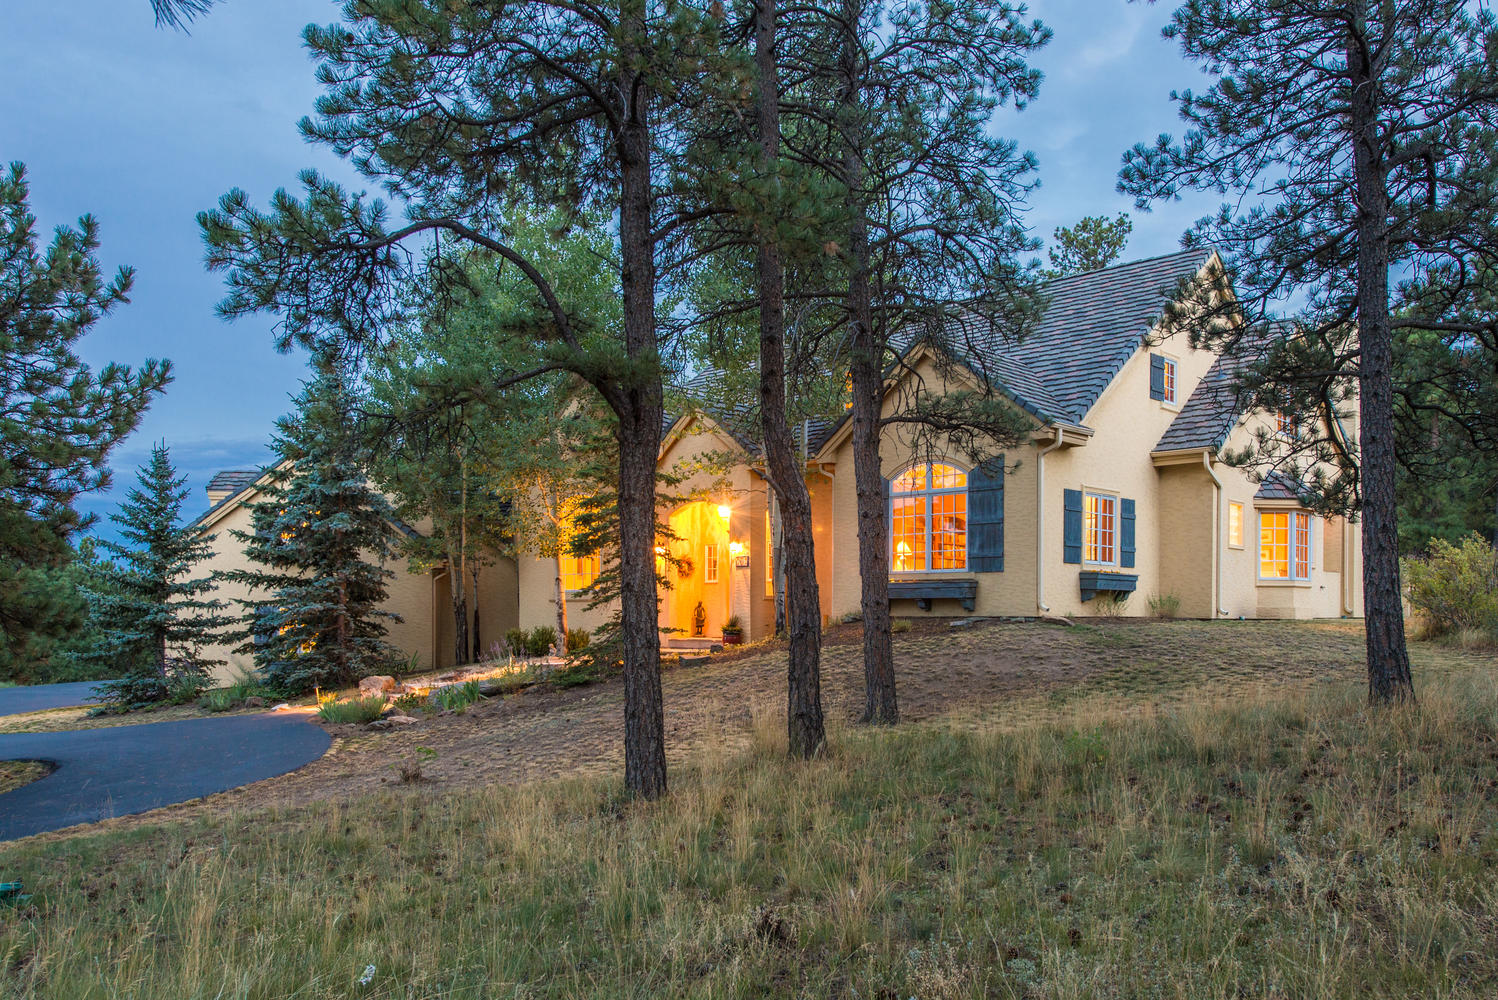 Single Family Home for Sale at Brilliantly Combining Rustic and Refined 28087 Meadowlark Drive Golden, Colorado, 80401 United States